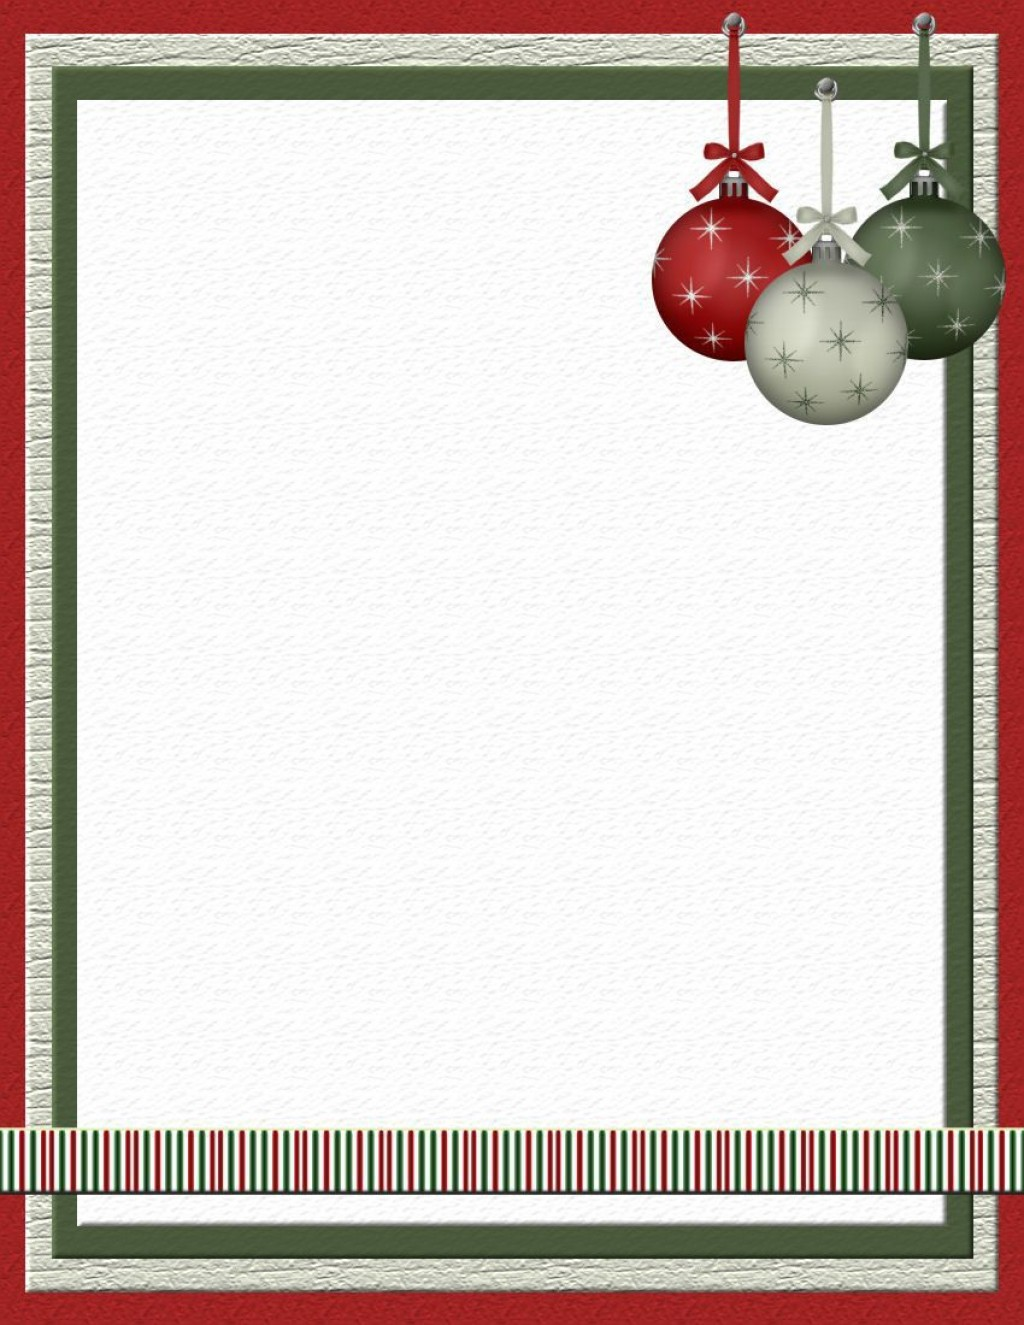 002 Stupendou Free Christma Template For Word Idea  Holiday Party Invitation Recipe Card Printable StationeryLarge